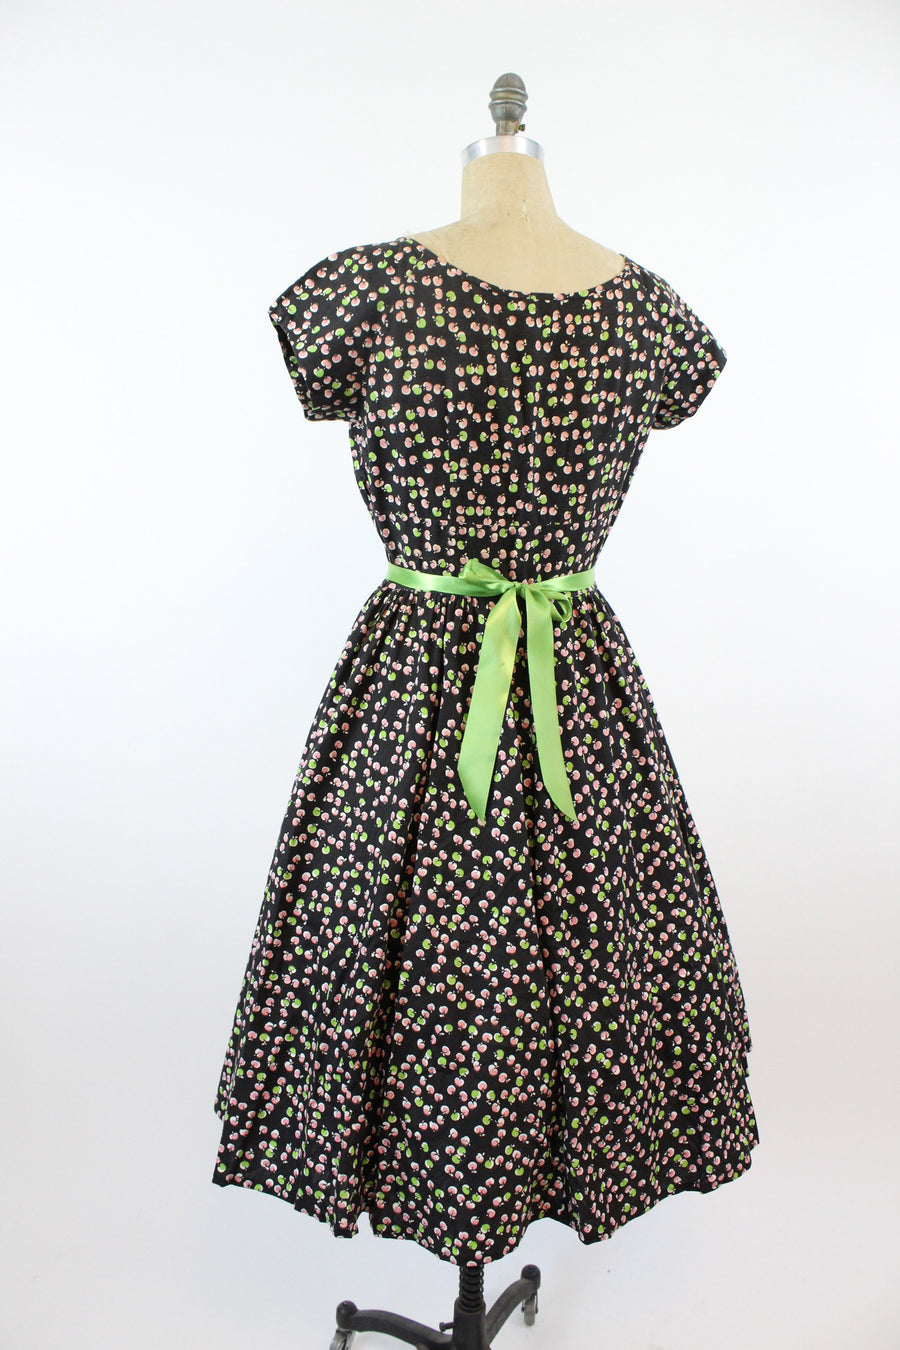 1950s apple print dress medium | vintage novelty print cotton dress